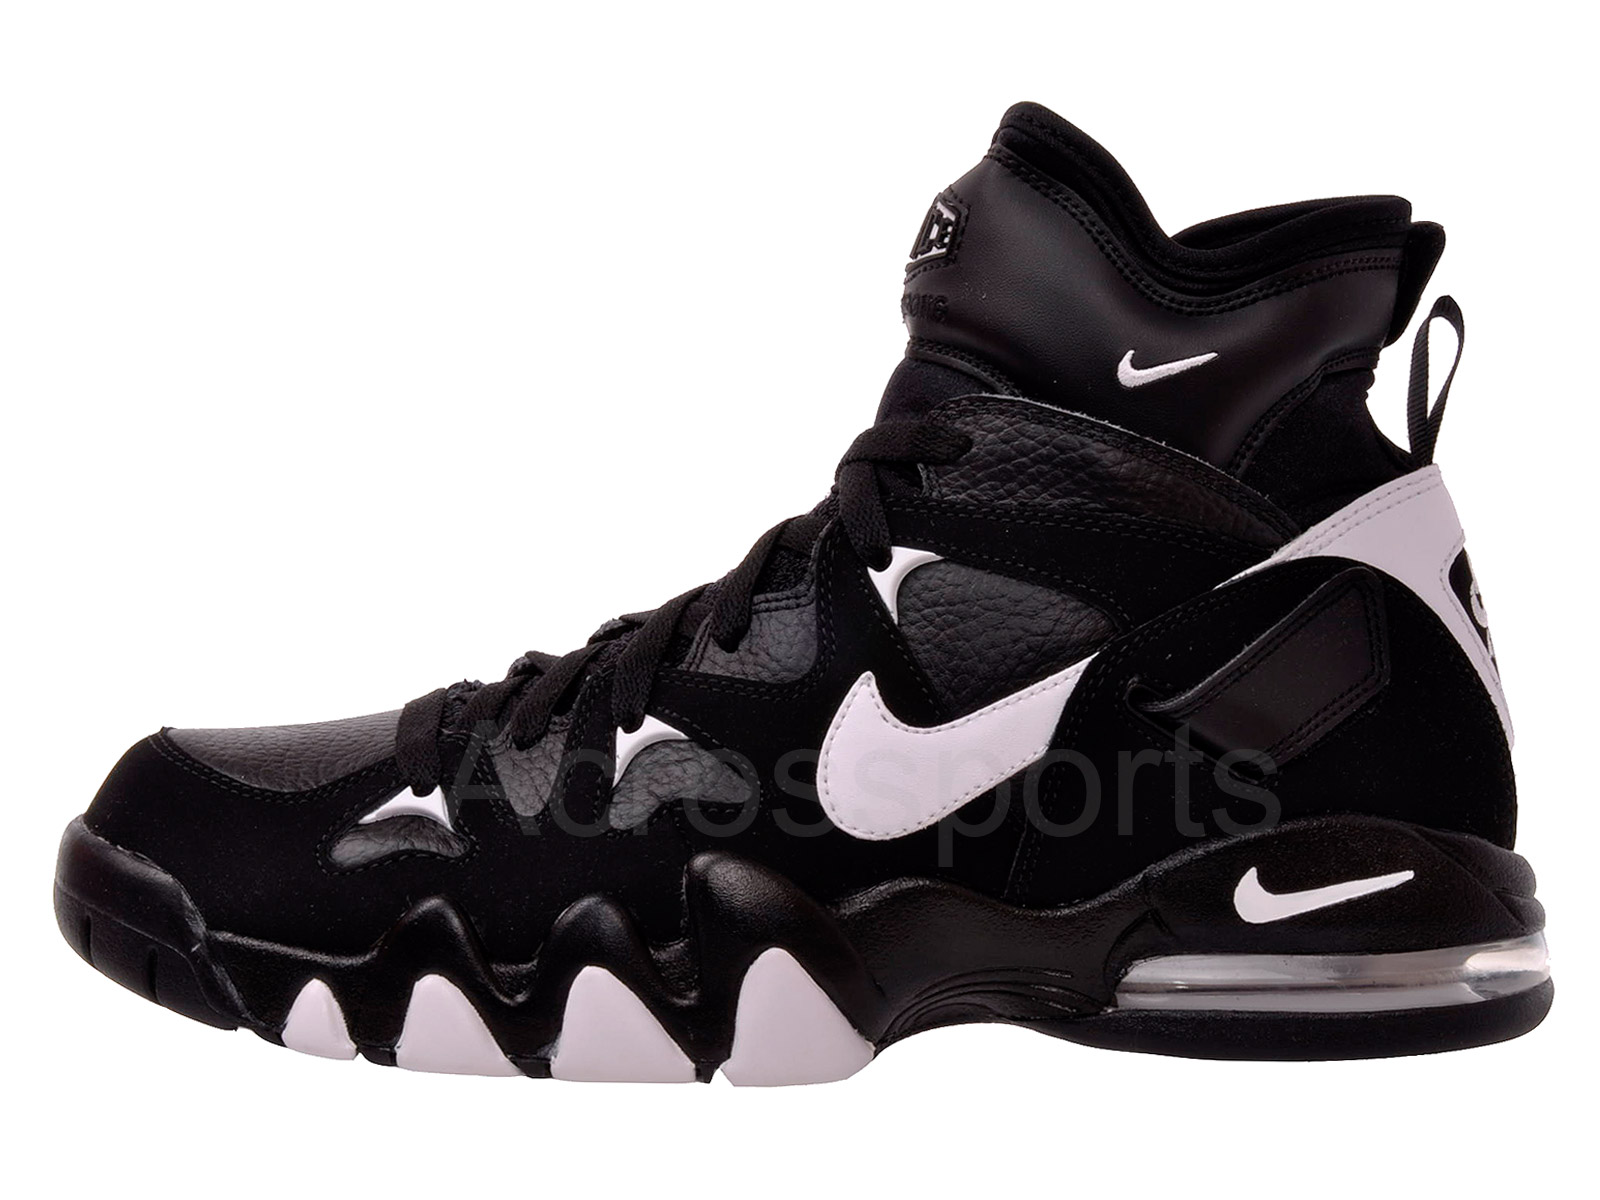 70a4e86c5871f9 nike air max strong 2 high sale Boys black and gold nike shox.